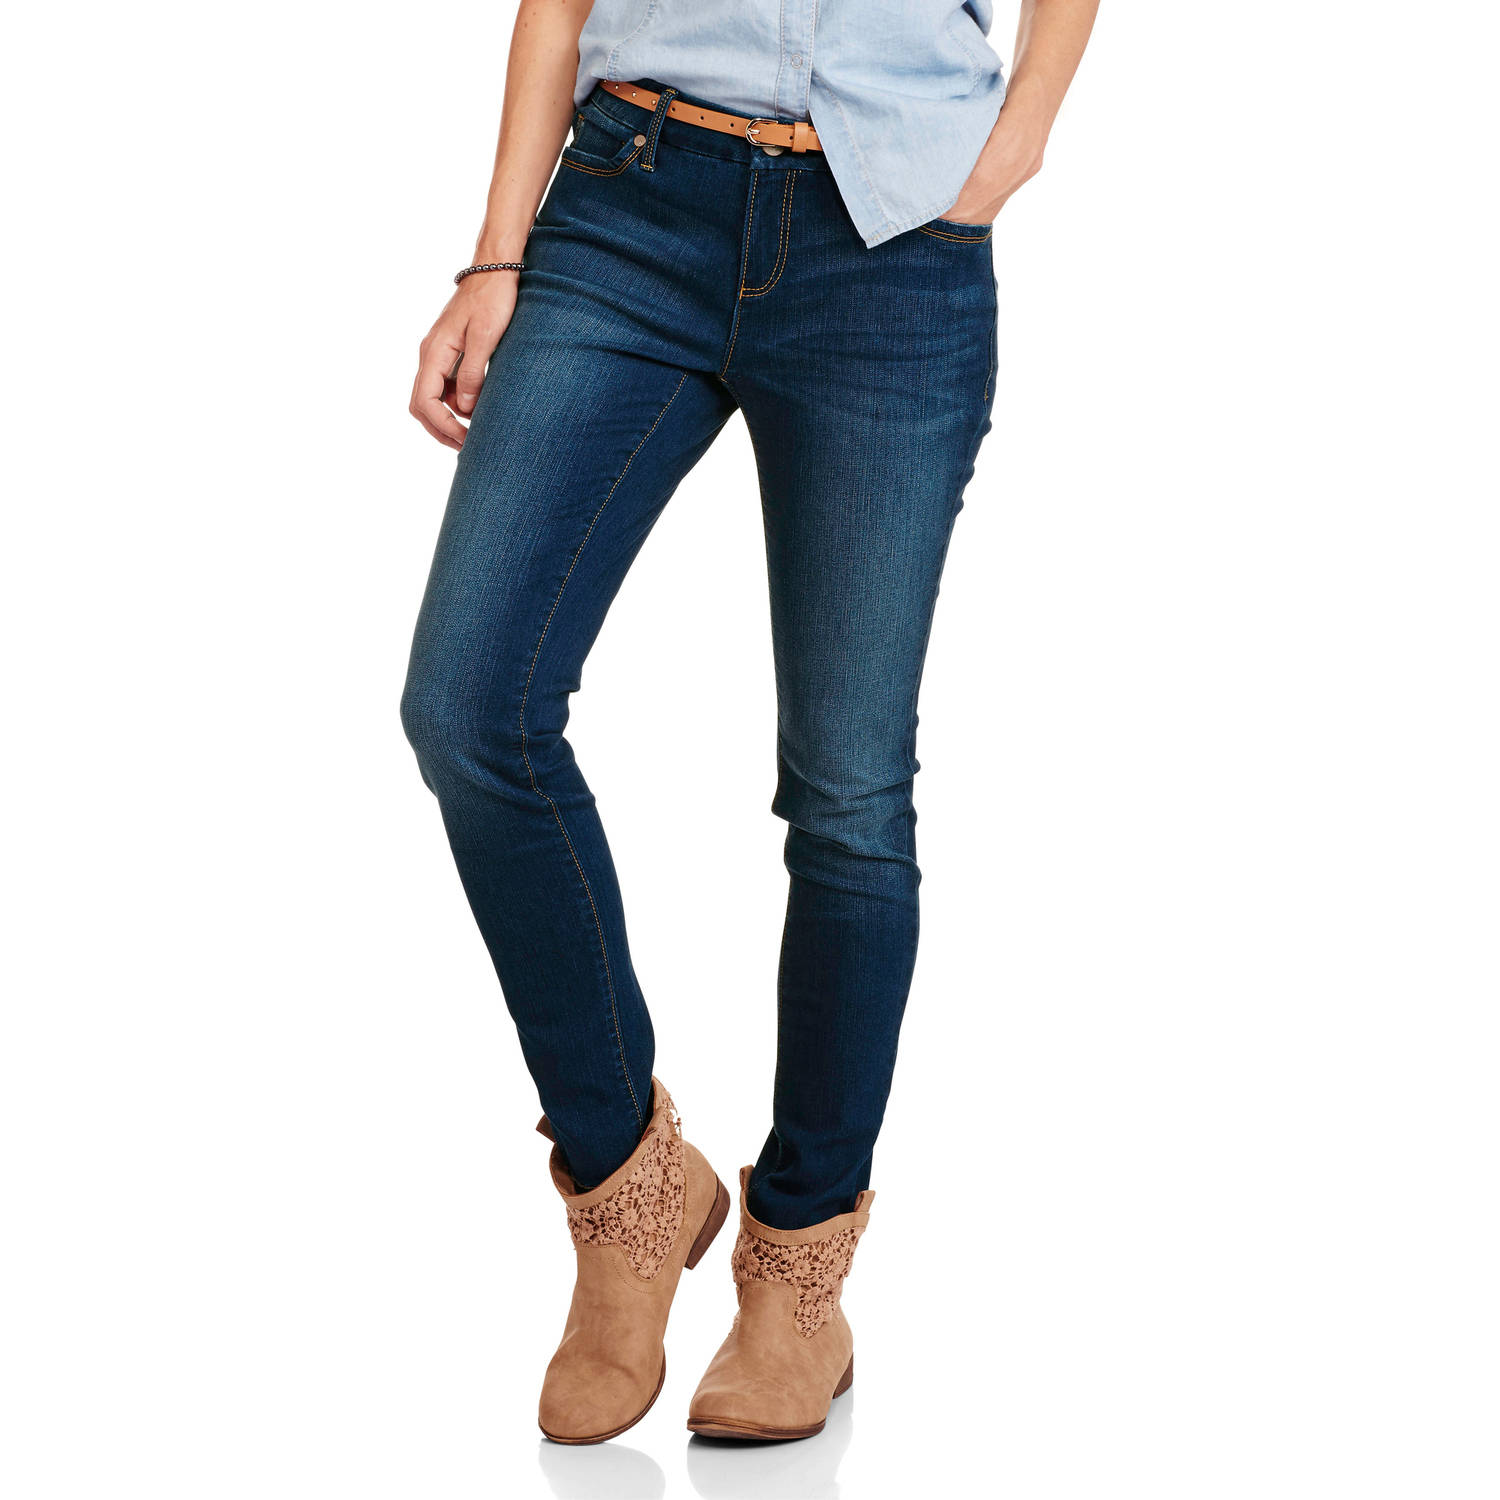 Faded Glory Women's Super Stretch Skinny Core Denim available in Regular and Petite